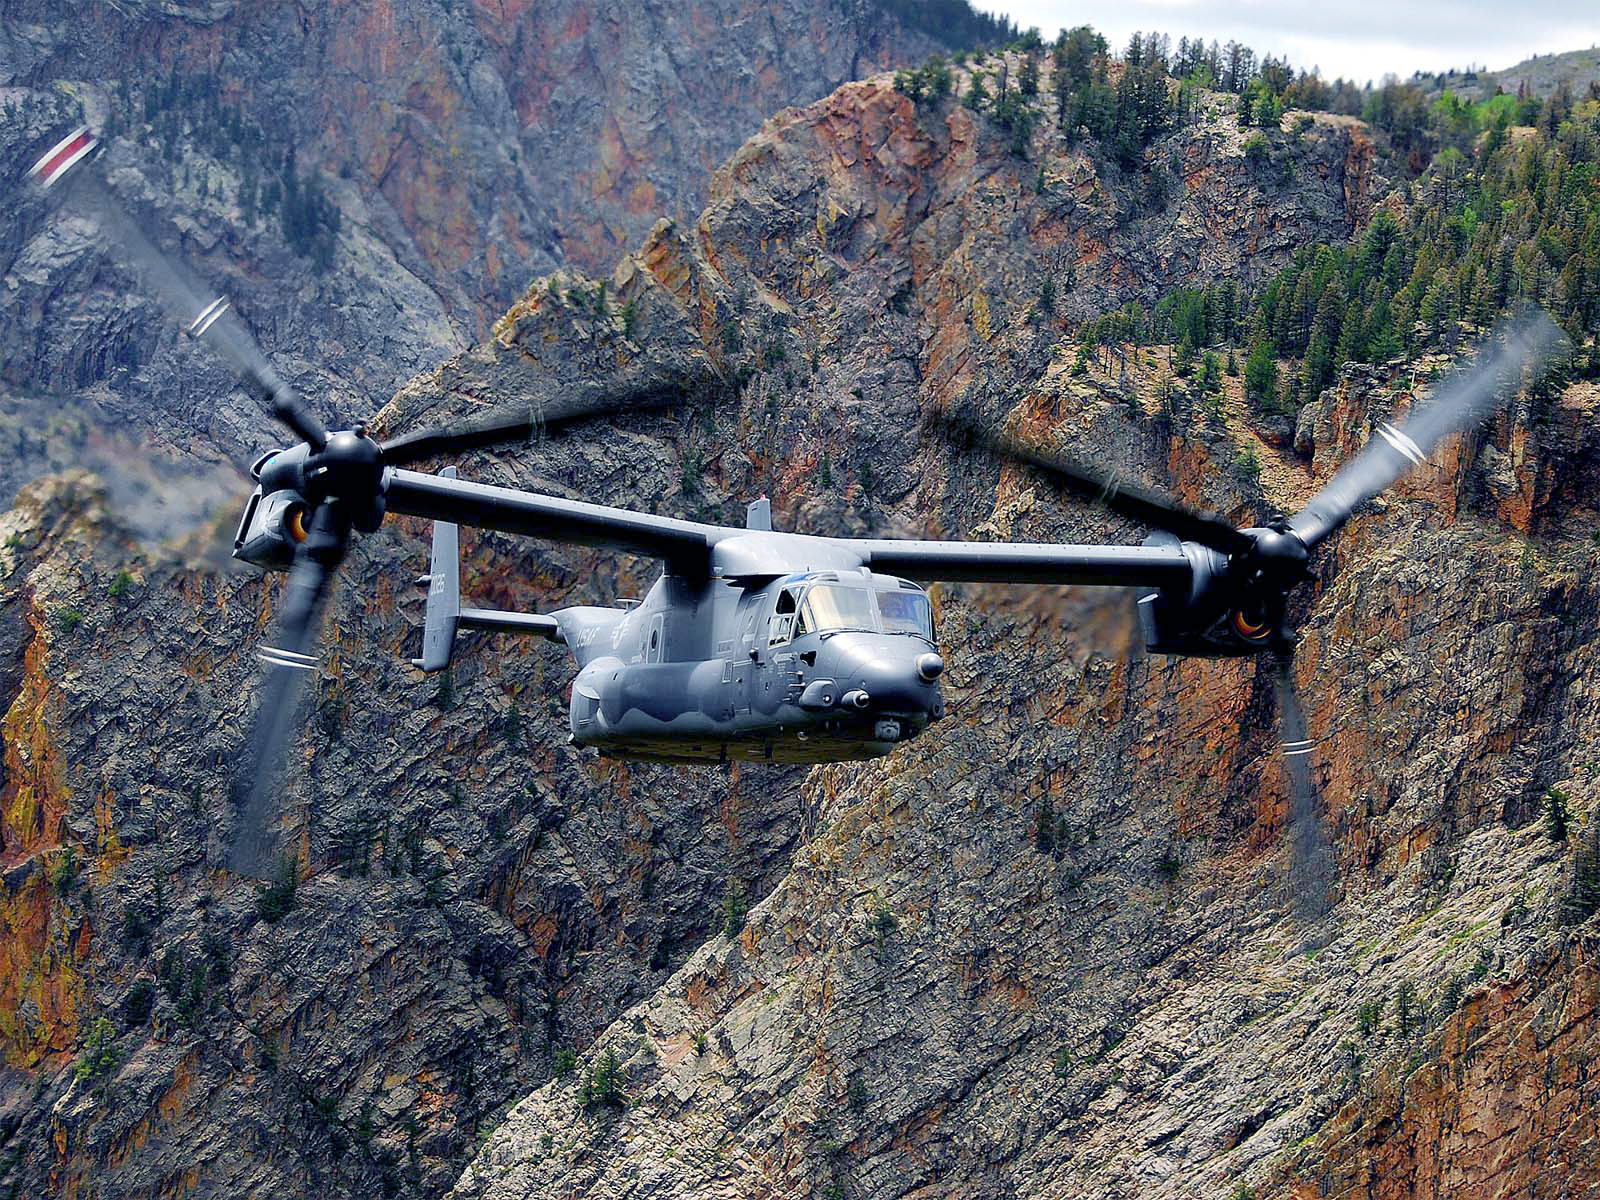 wallpaper of us army helicopter computer desktop wallpaper images 1600x1200